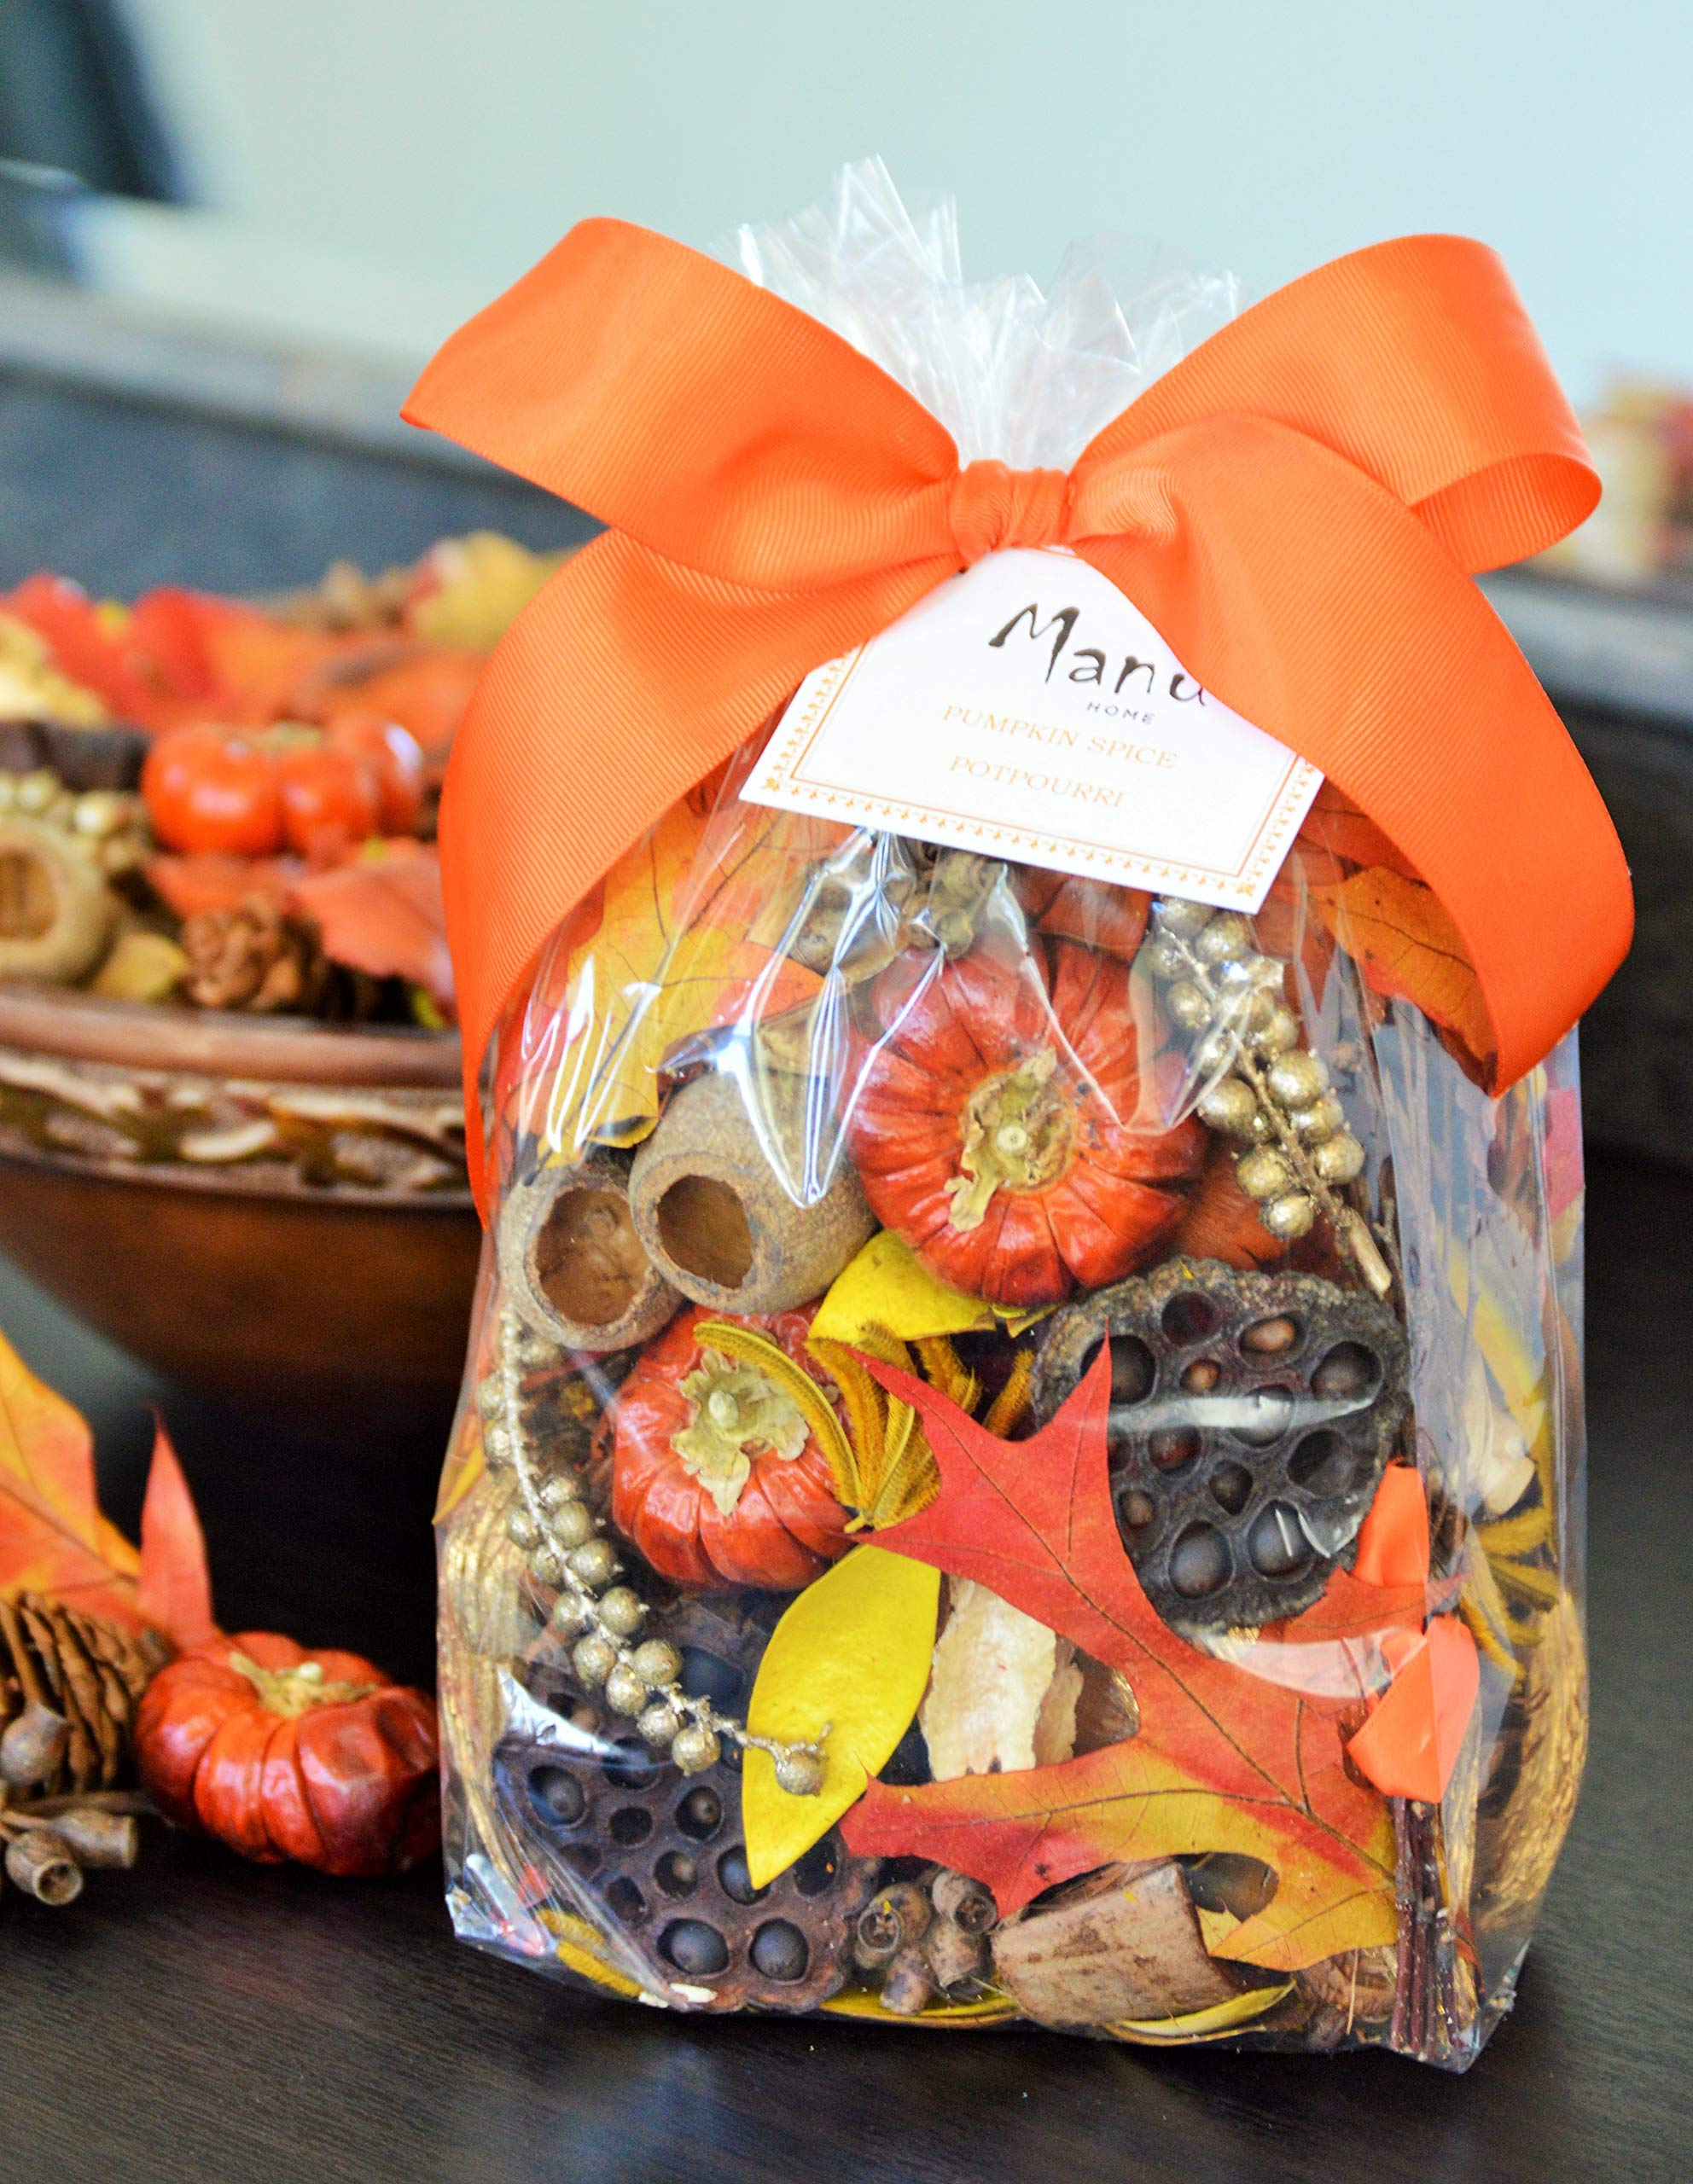 Manu Home Pumpkin Spice Large Potpourri Bag-12 oz Botanicals ~ Made with All Essential Oils, Plant Materials and Beautiful Fall Colors~ Made in USA